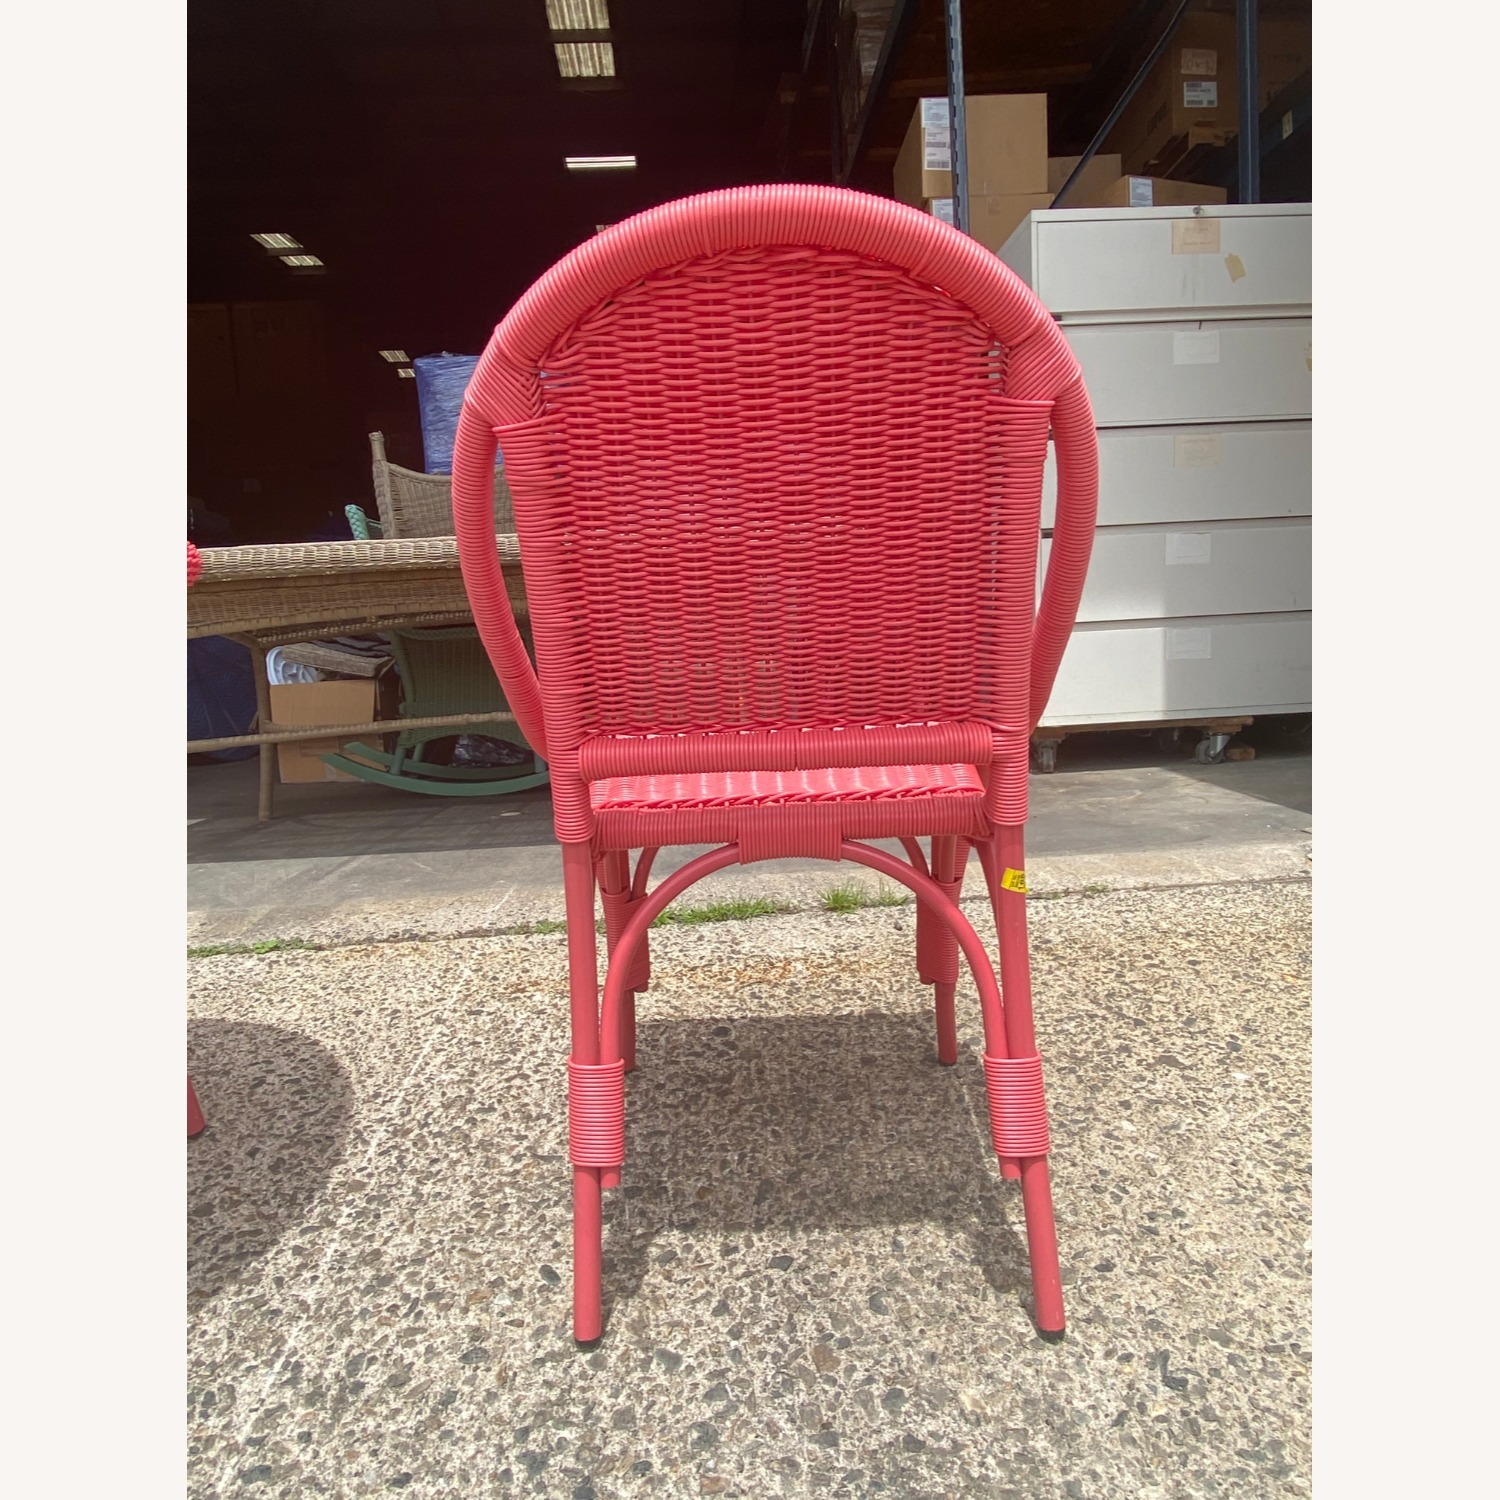 Two Maine Cottage Pink Outdoor Wicker Chairs - image-3